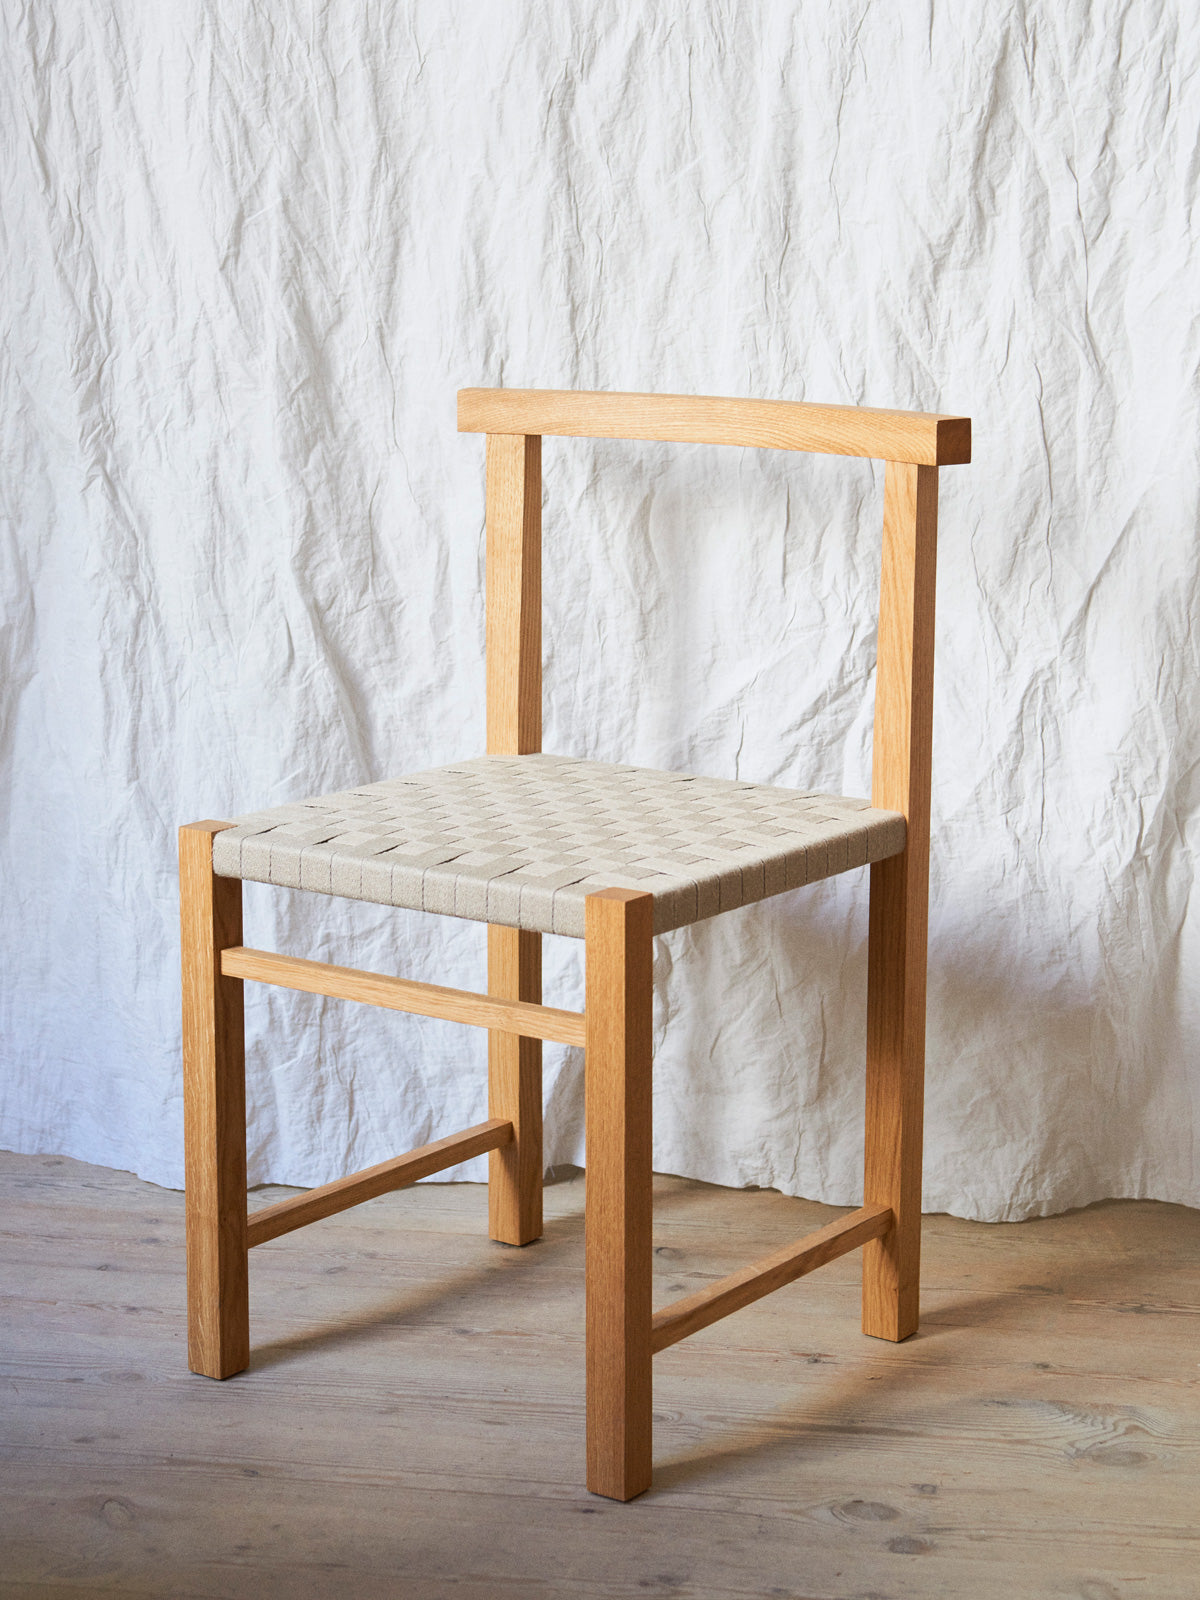 E15 Karnak Chair by Ferdinand Kramer